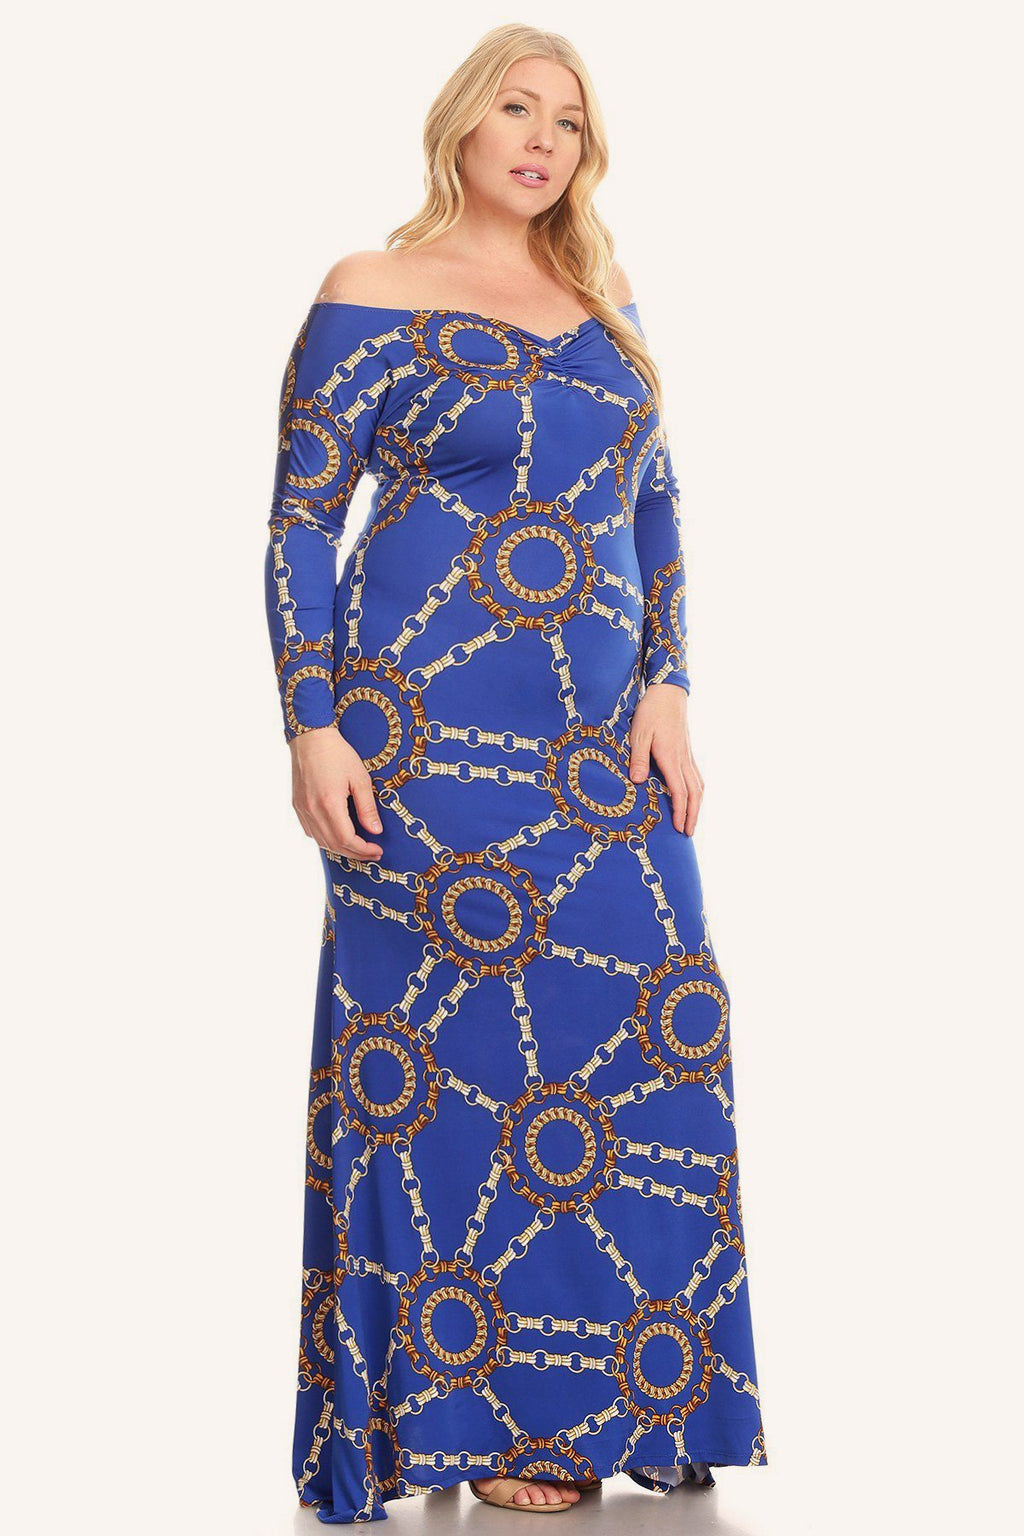 Plus Size Designer Link Pattern Off Shoulder Maxi Dress